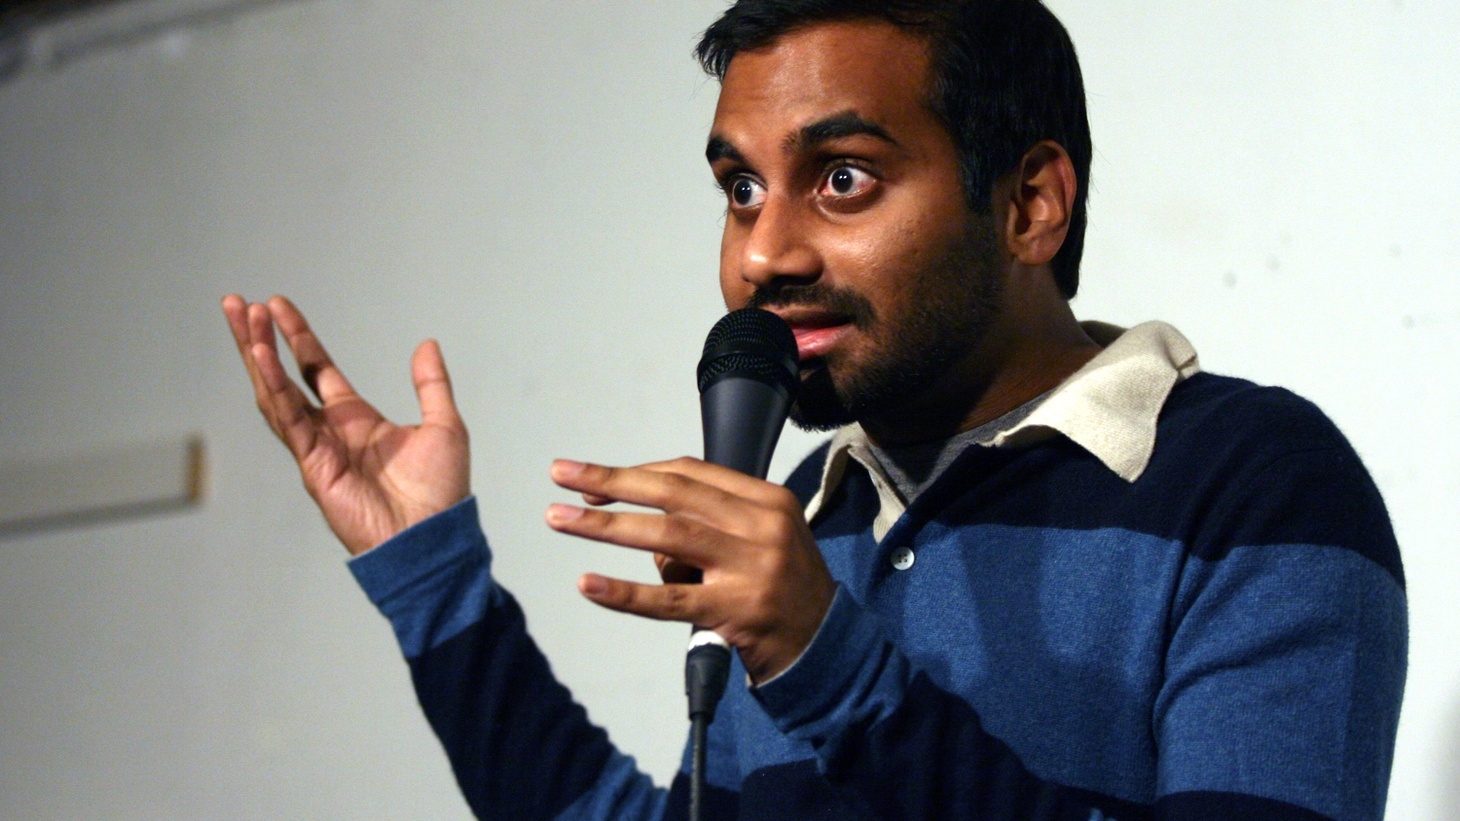 Aziz Ansari is just one of three comedians who've sold out Madison Square Garden in the past three years. Only three comedians had ever sold out the Garden before 2009. Sure, comedy and comedians were really big in the days of Roseanne, Cosby and Home Improvement. Things got tough for them, however, when the sitcom went out of favor.